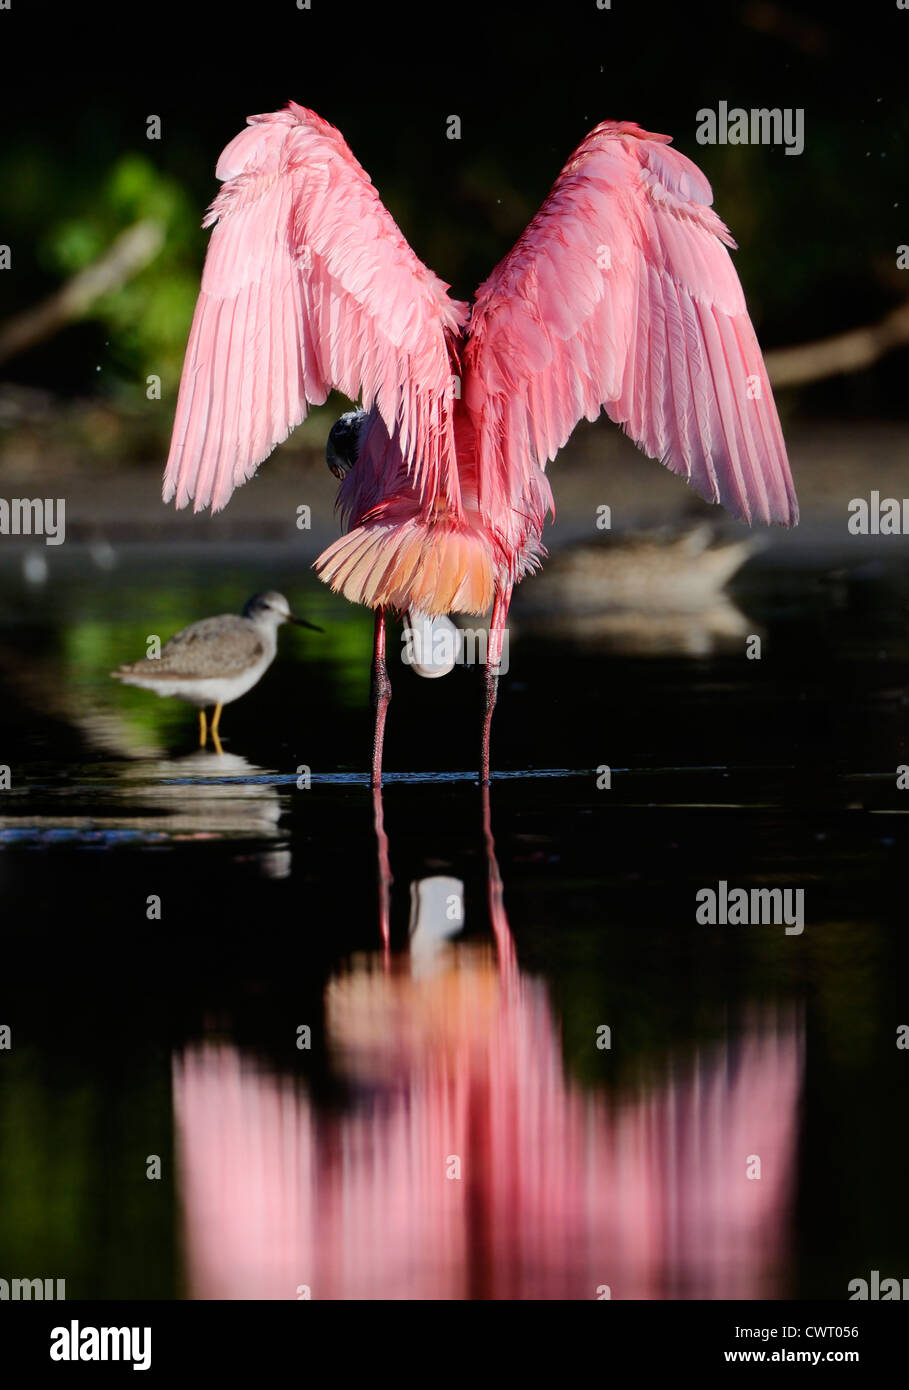 Roseate Spoonbill stretching its wings - Stock Image